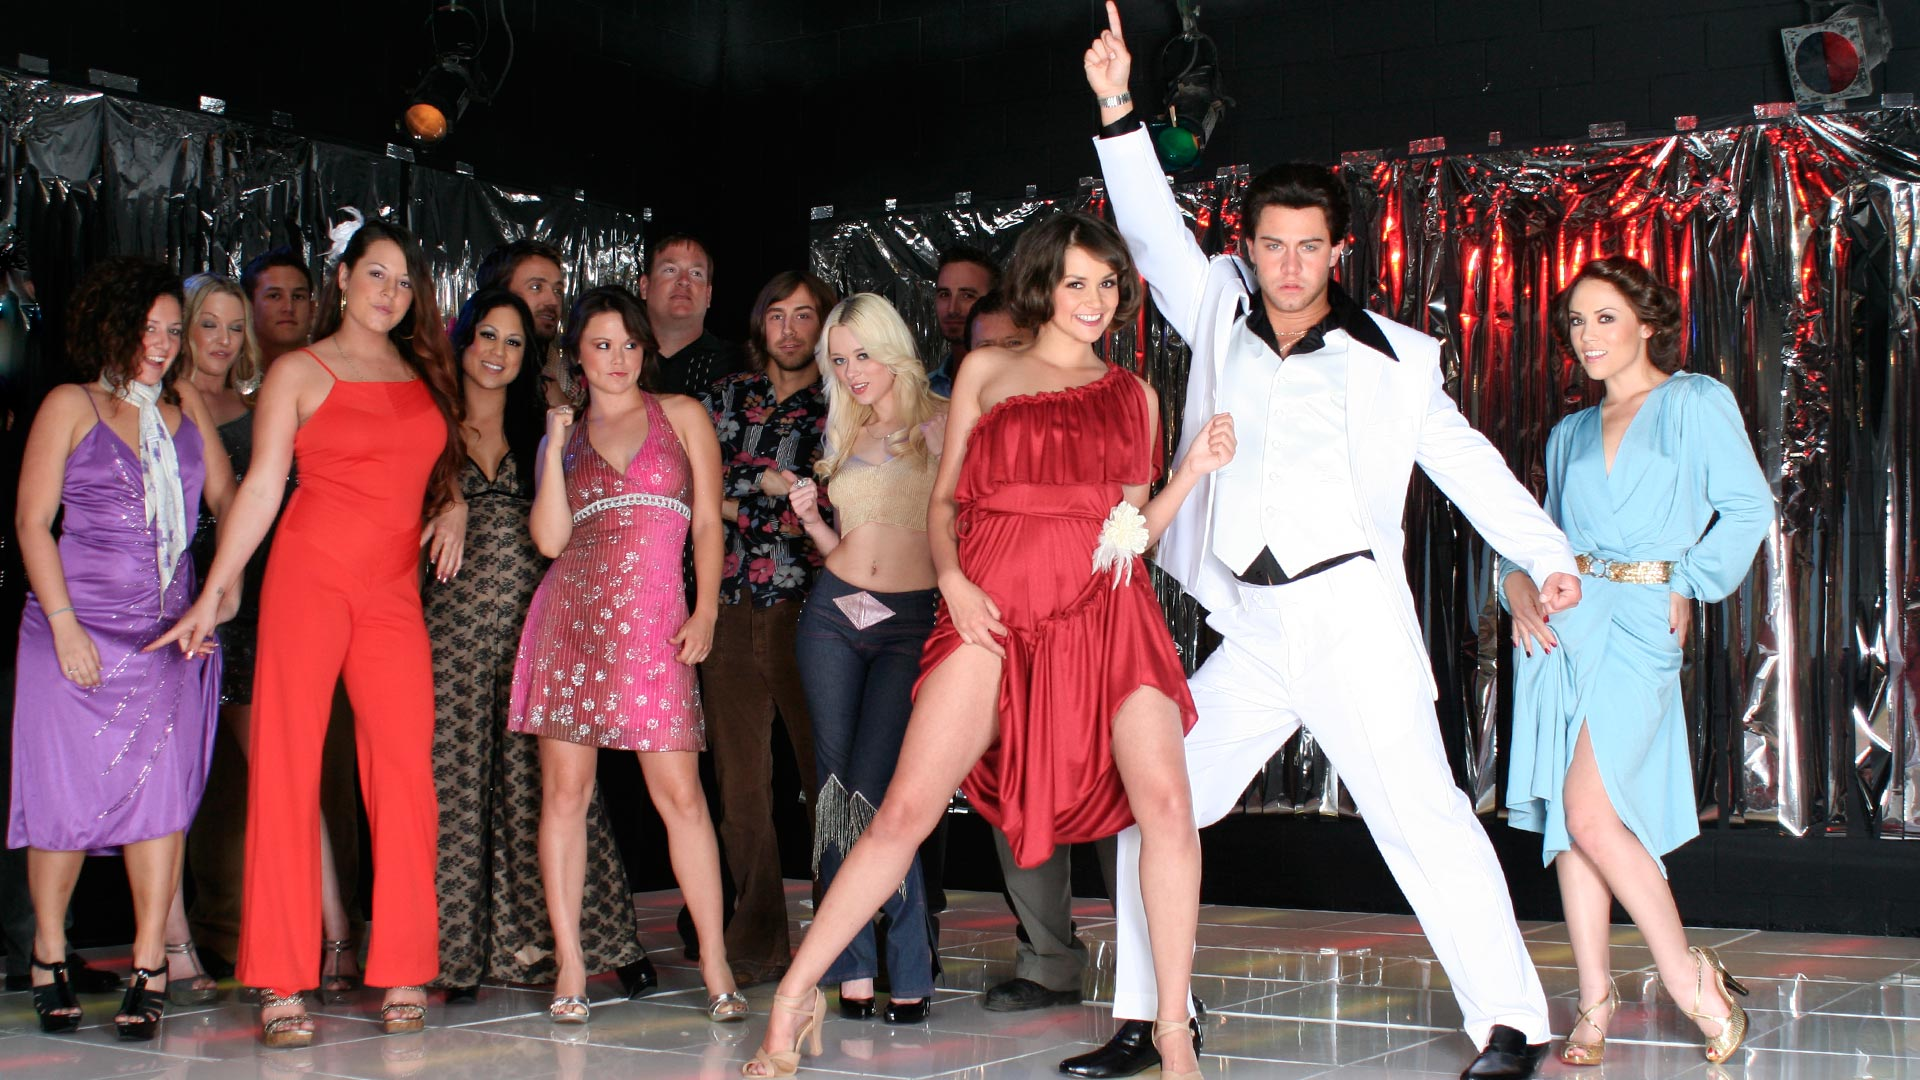 Saturday Night Fever - Die Sexparodie